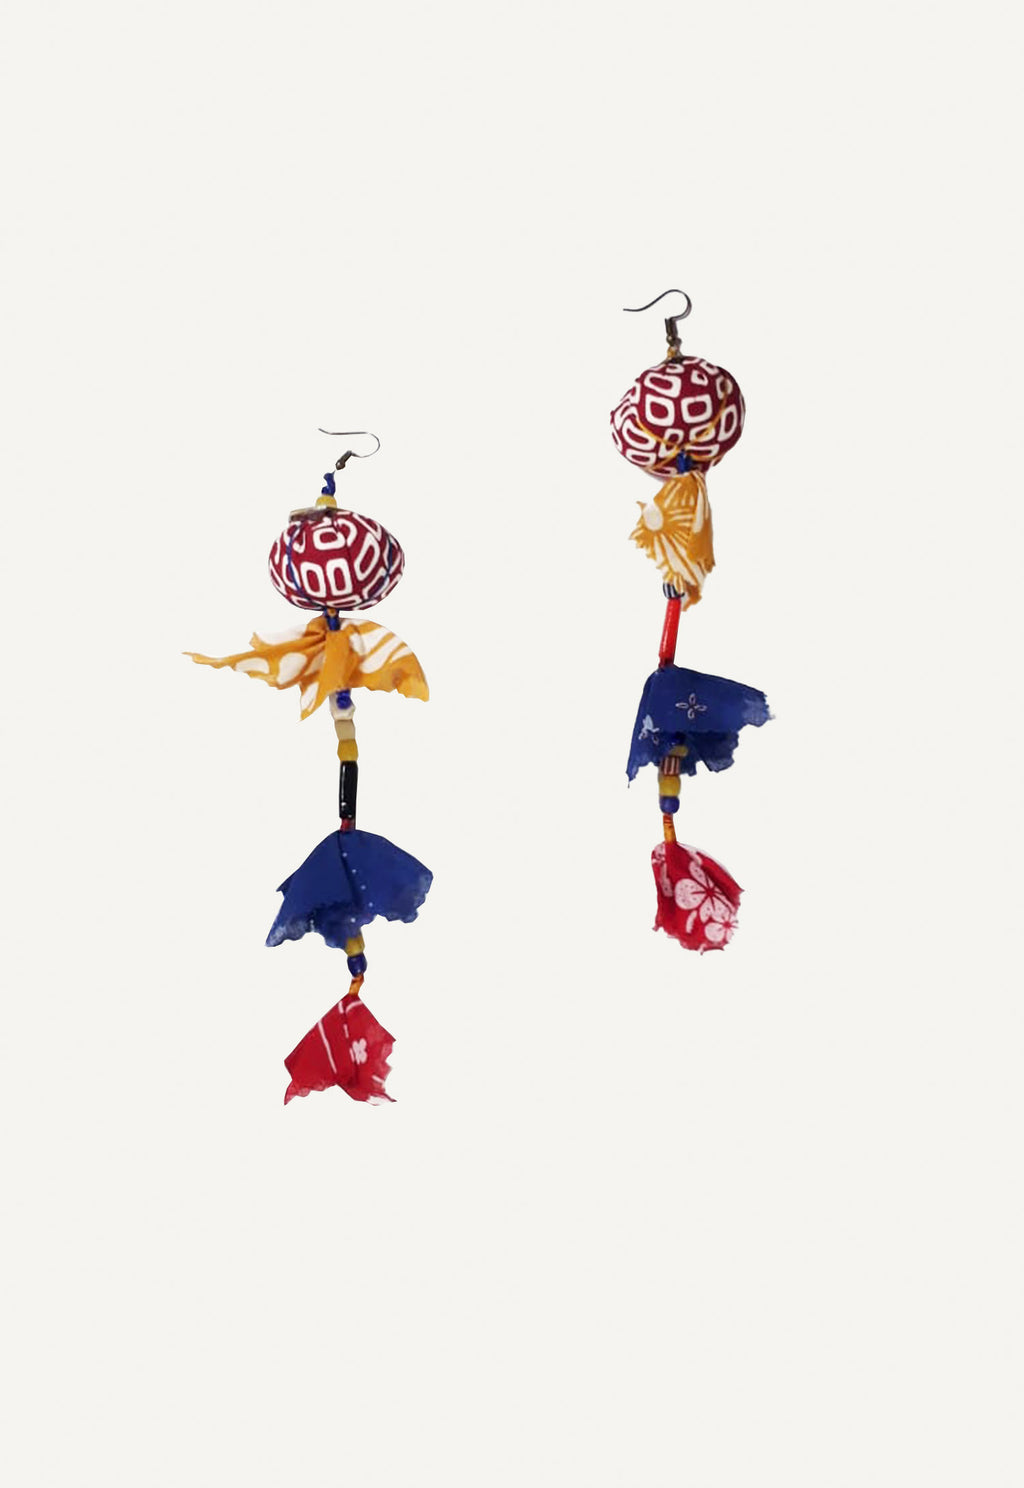 Anting Cangkune Medium